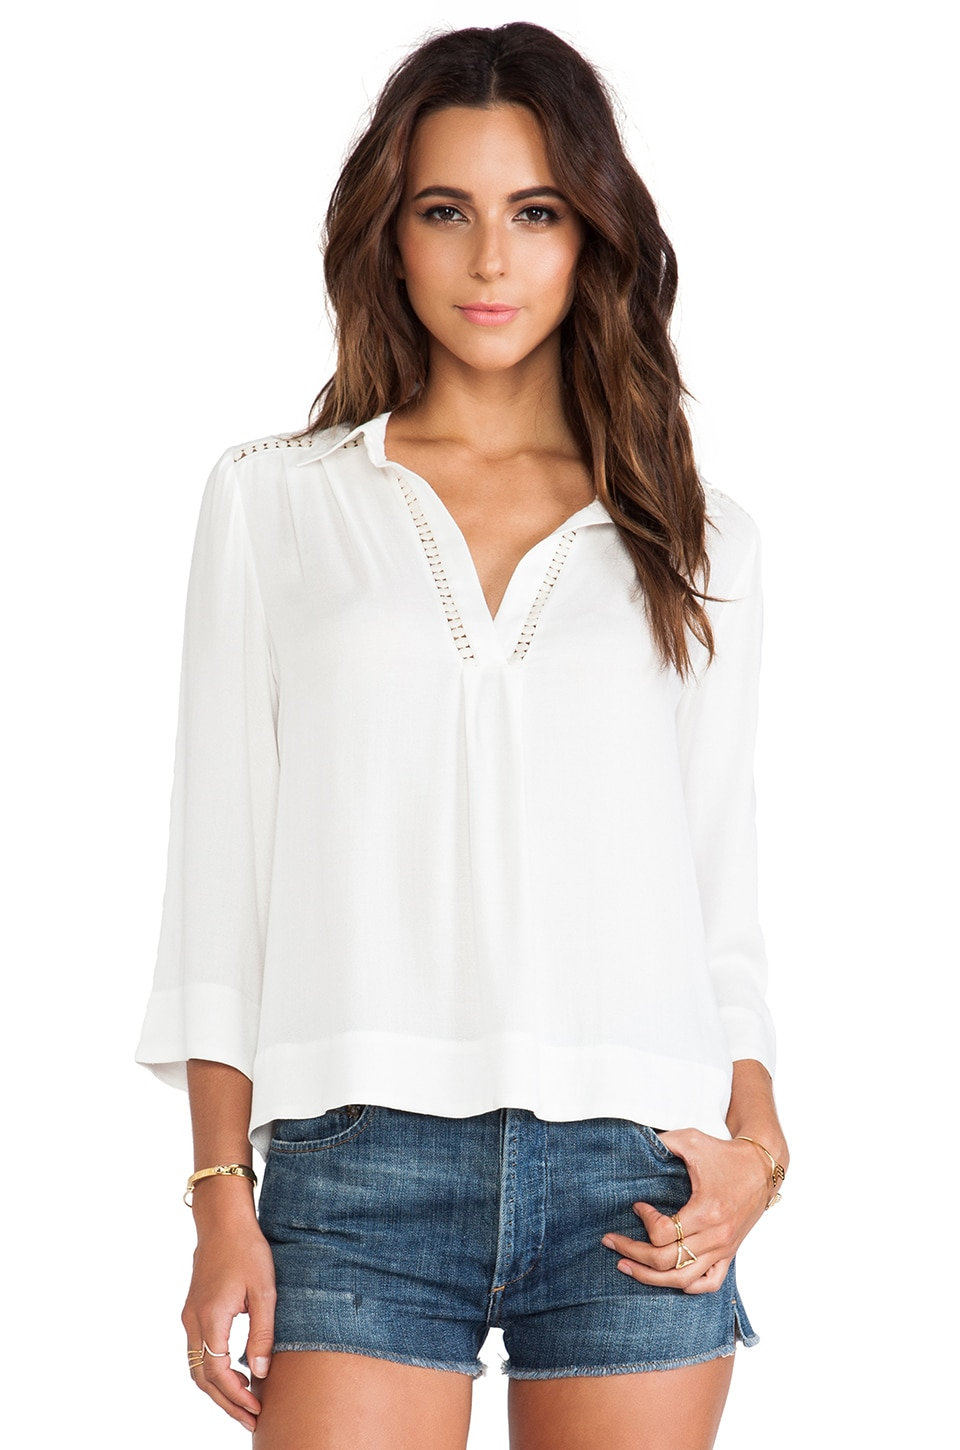 Ella Moss Stella Collared Blouse in Natural